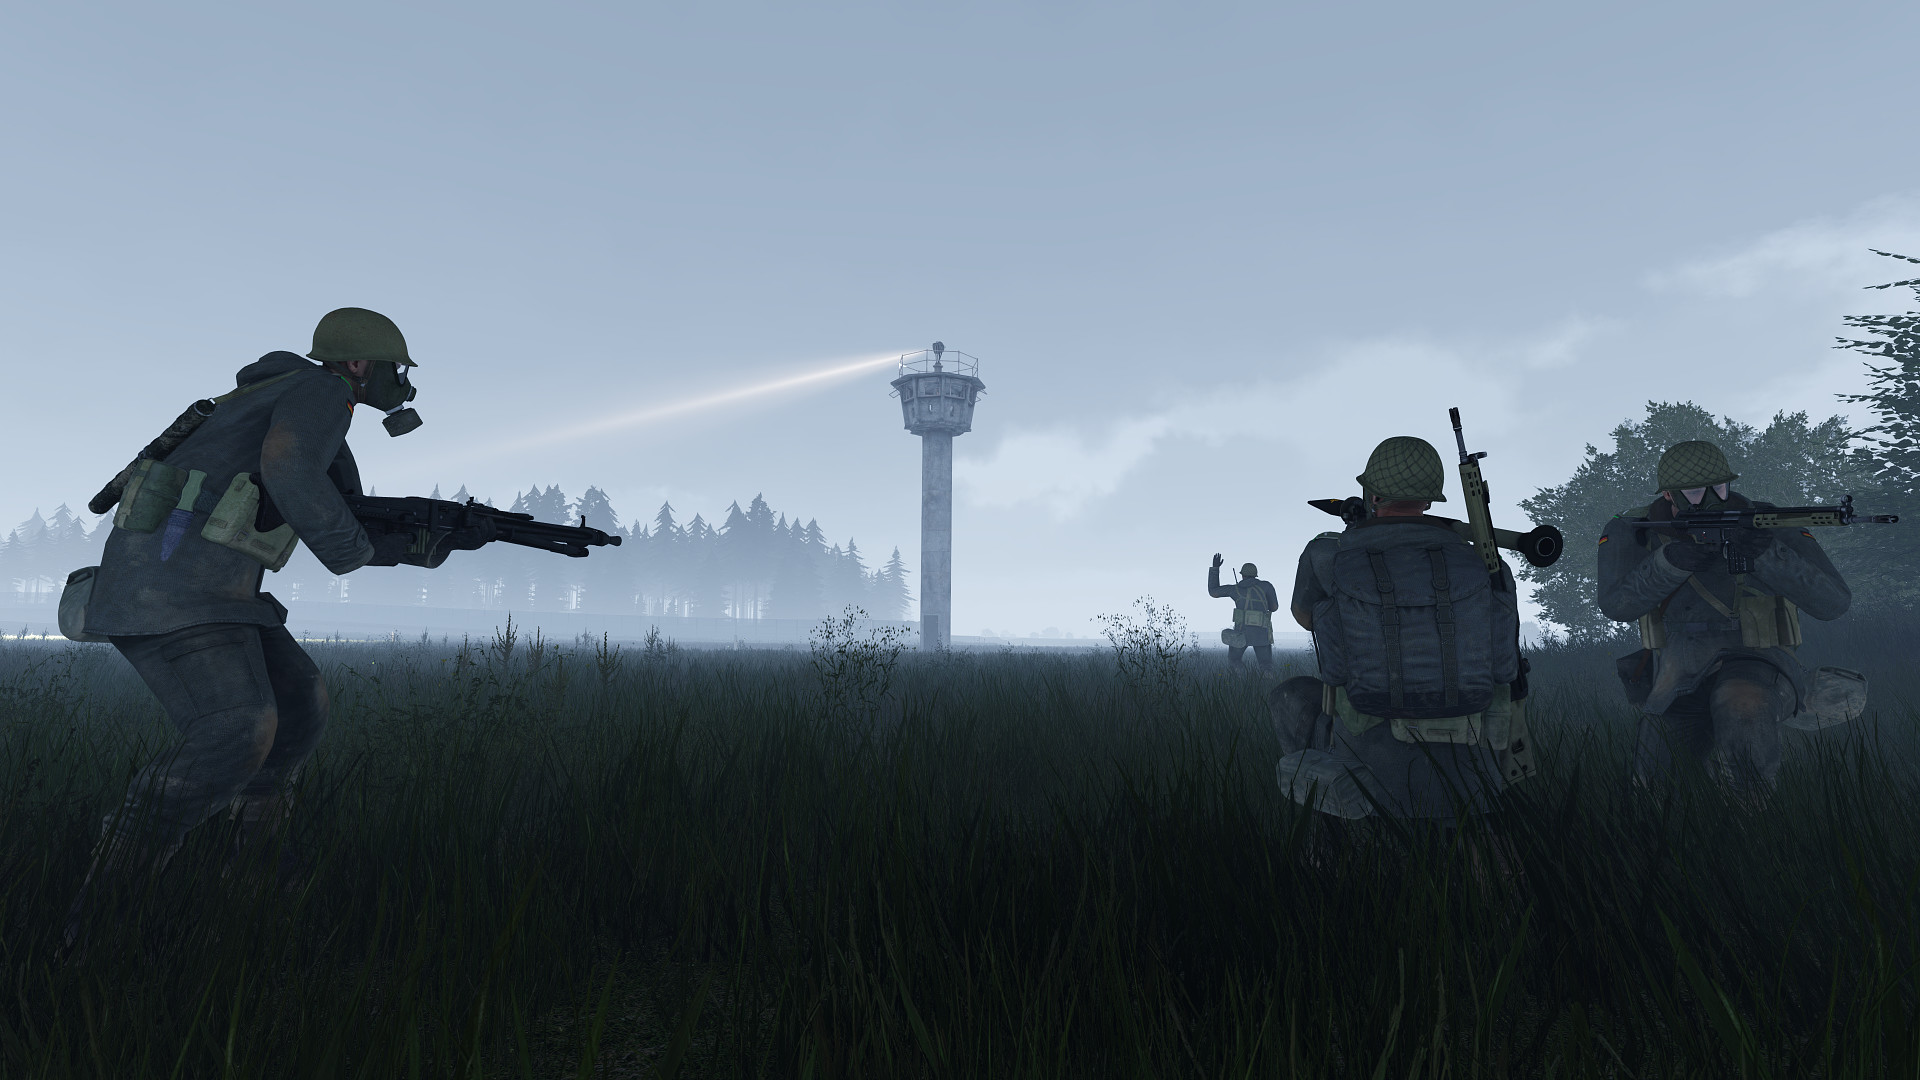 https://arma3.com/assets/img/post/images/arma3_dlc_creator_gm_screenshot_01.jpg